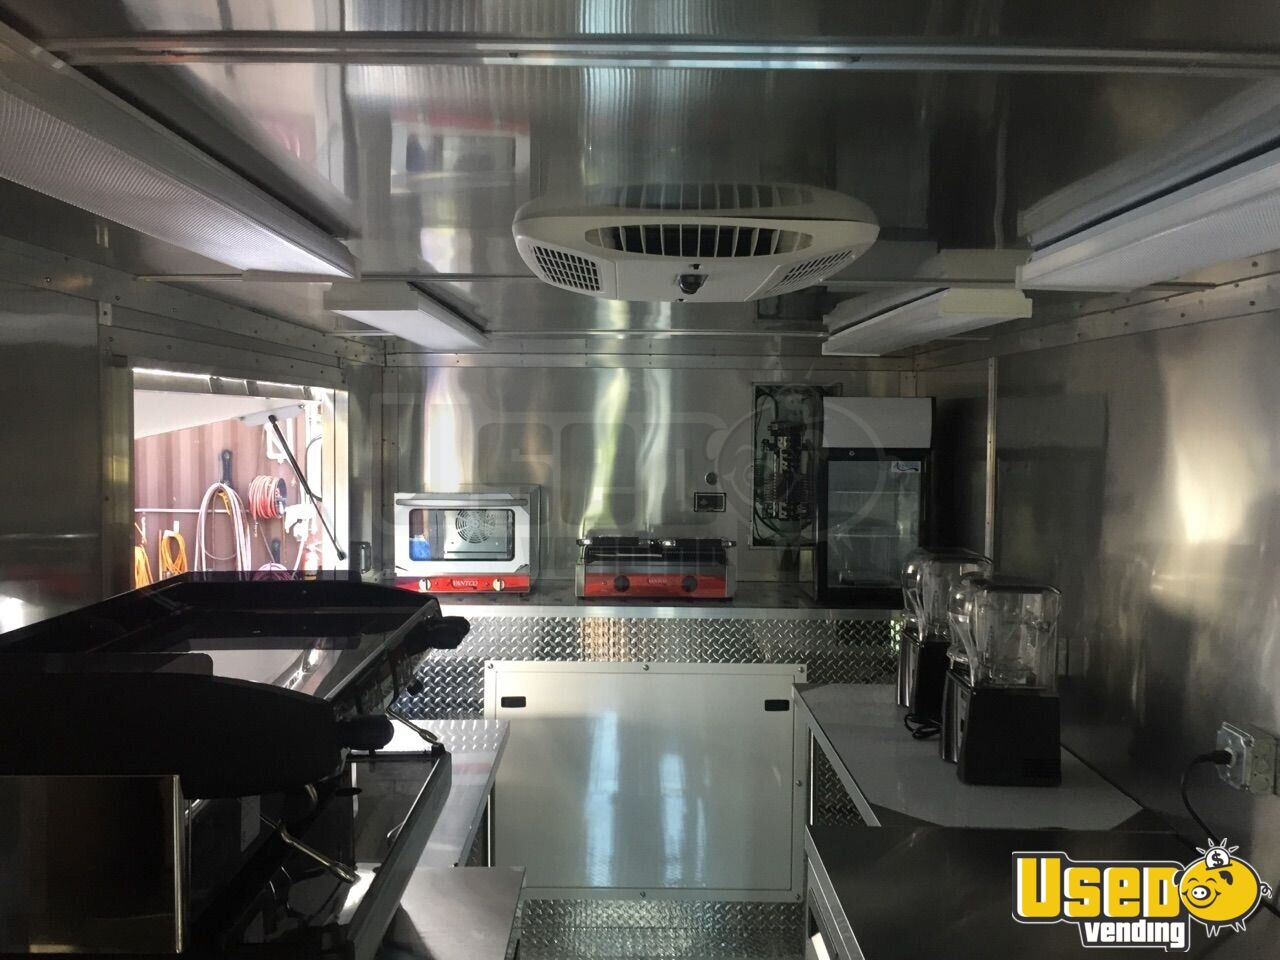 1998 Chevi P30 All-purpose Food Truck Stainless Steel Wall Covers Florida Gas Engine for Sale - 5